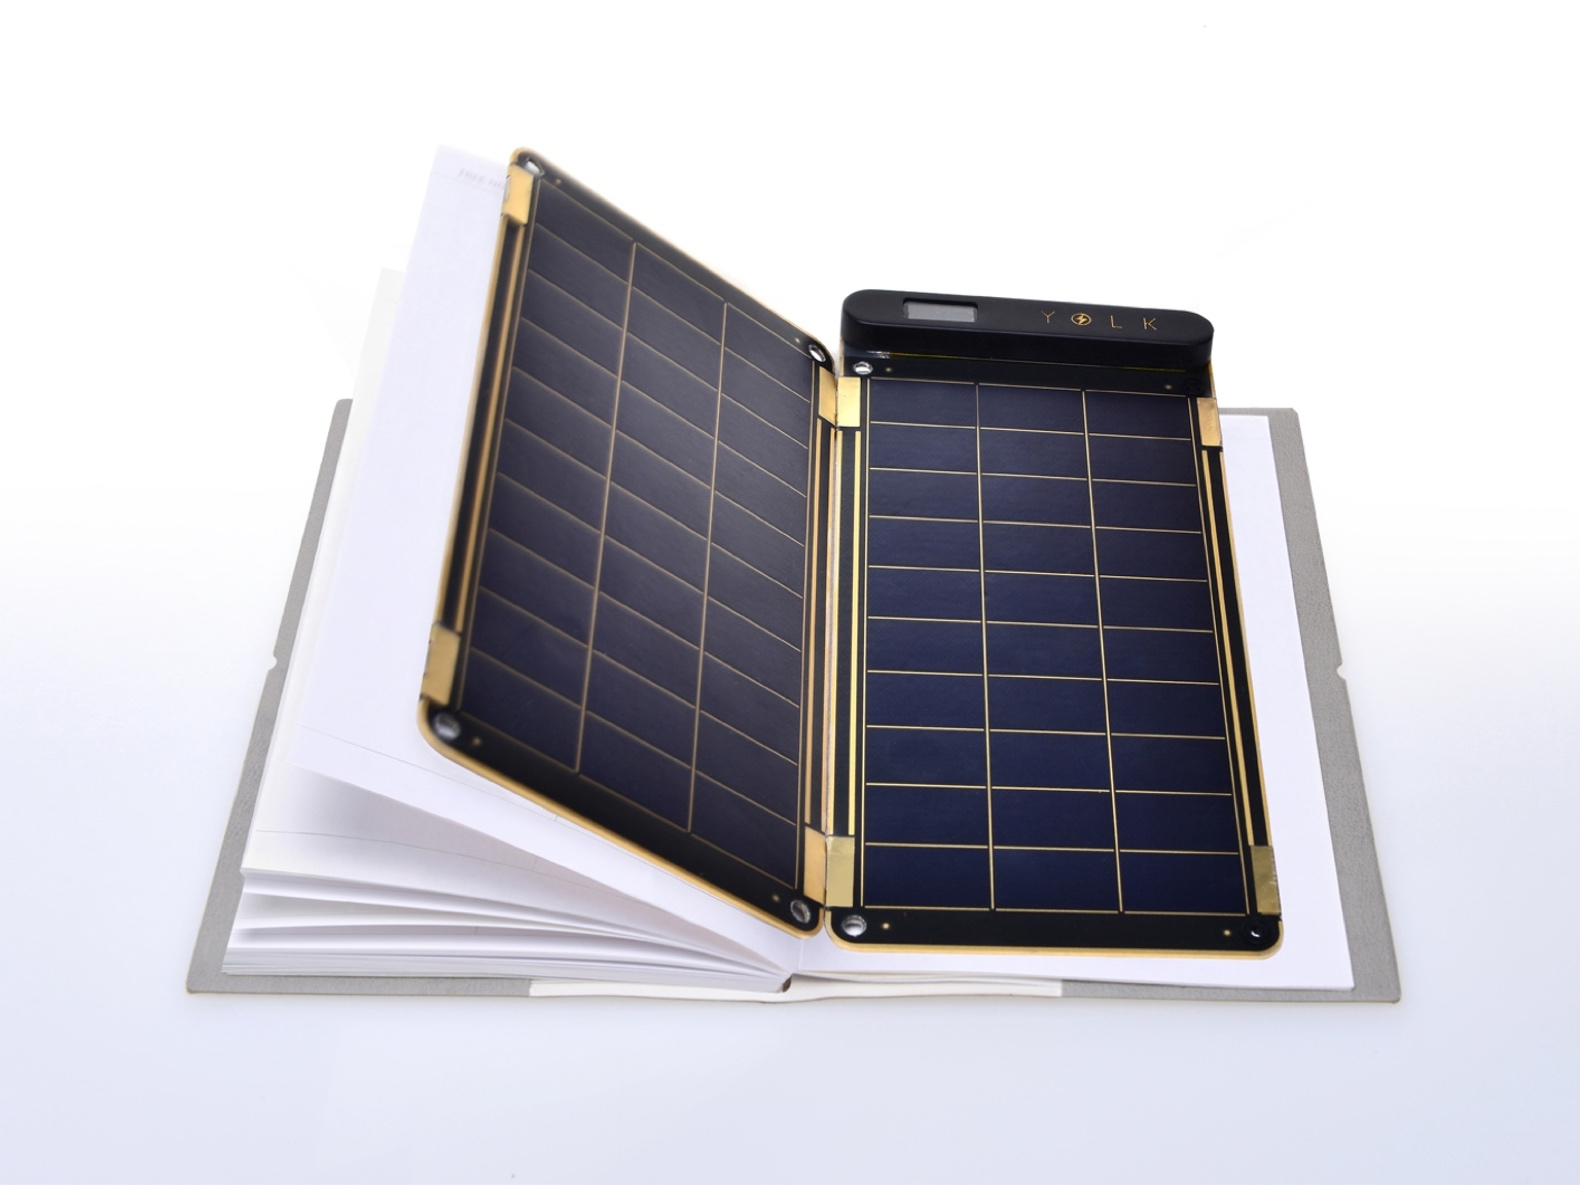 Best Portable Travel Solar Charger